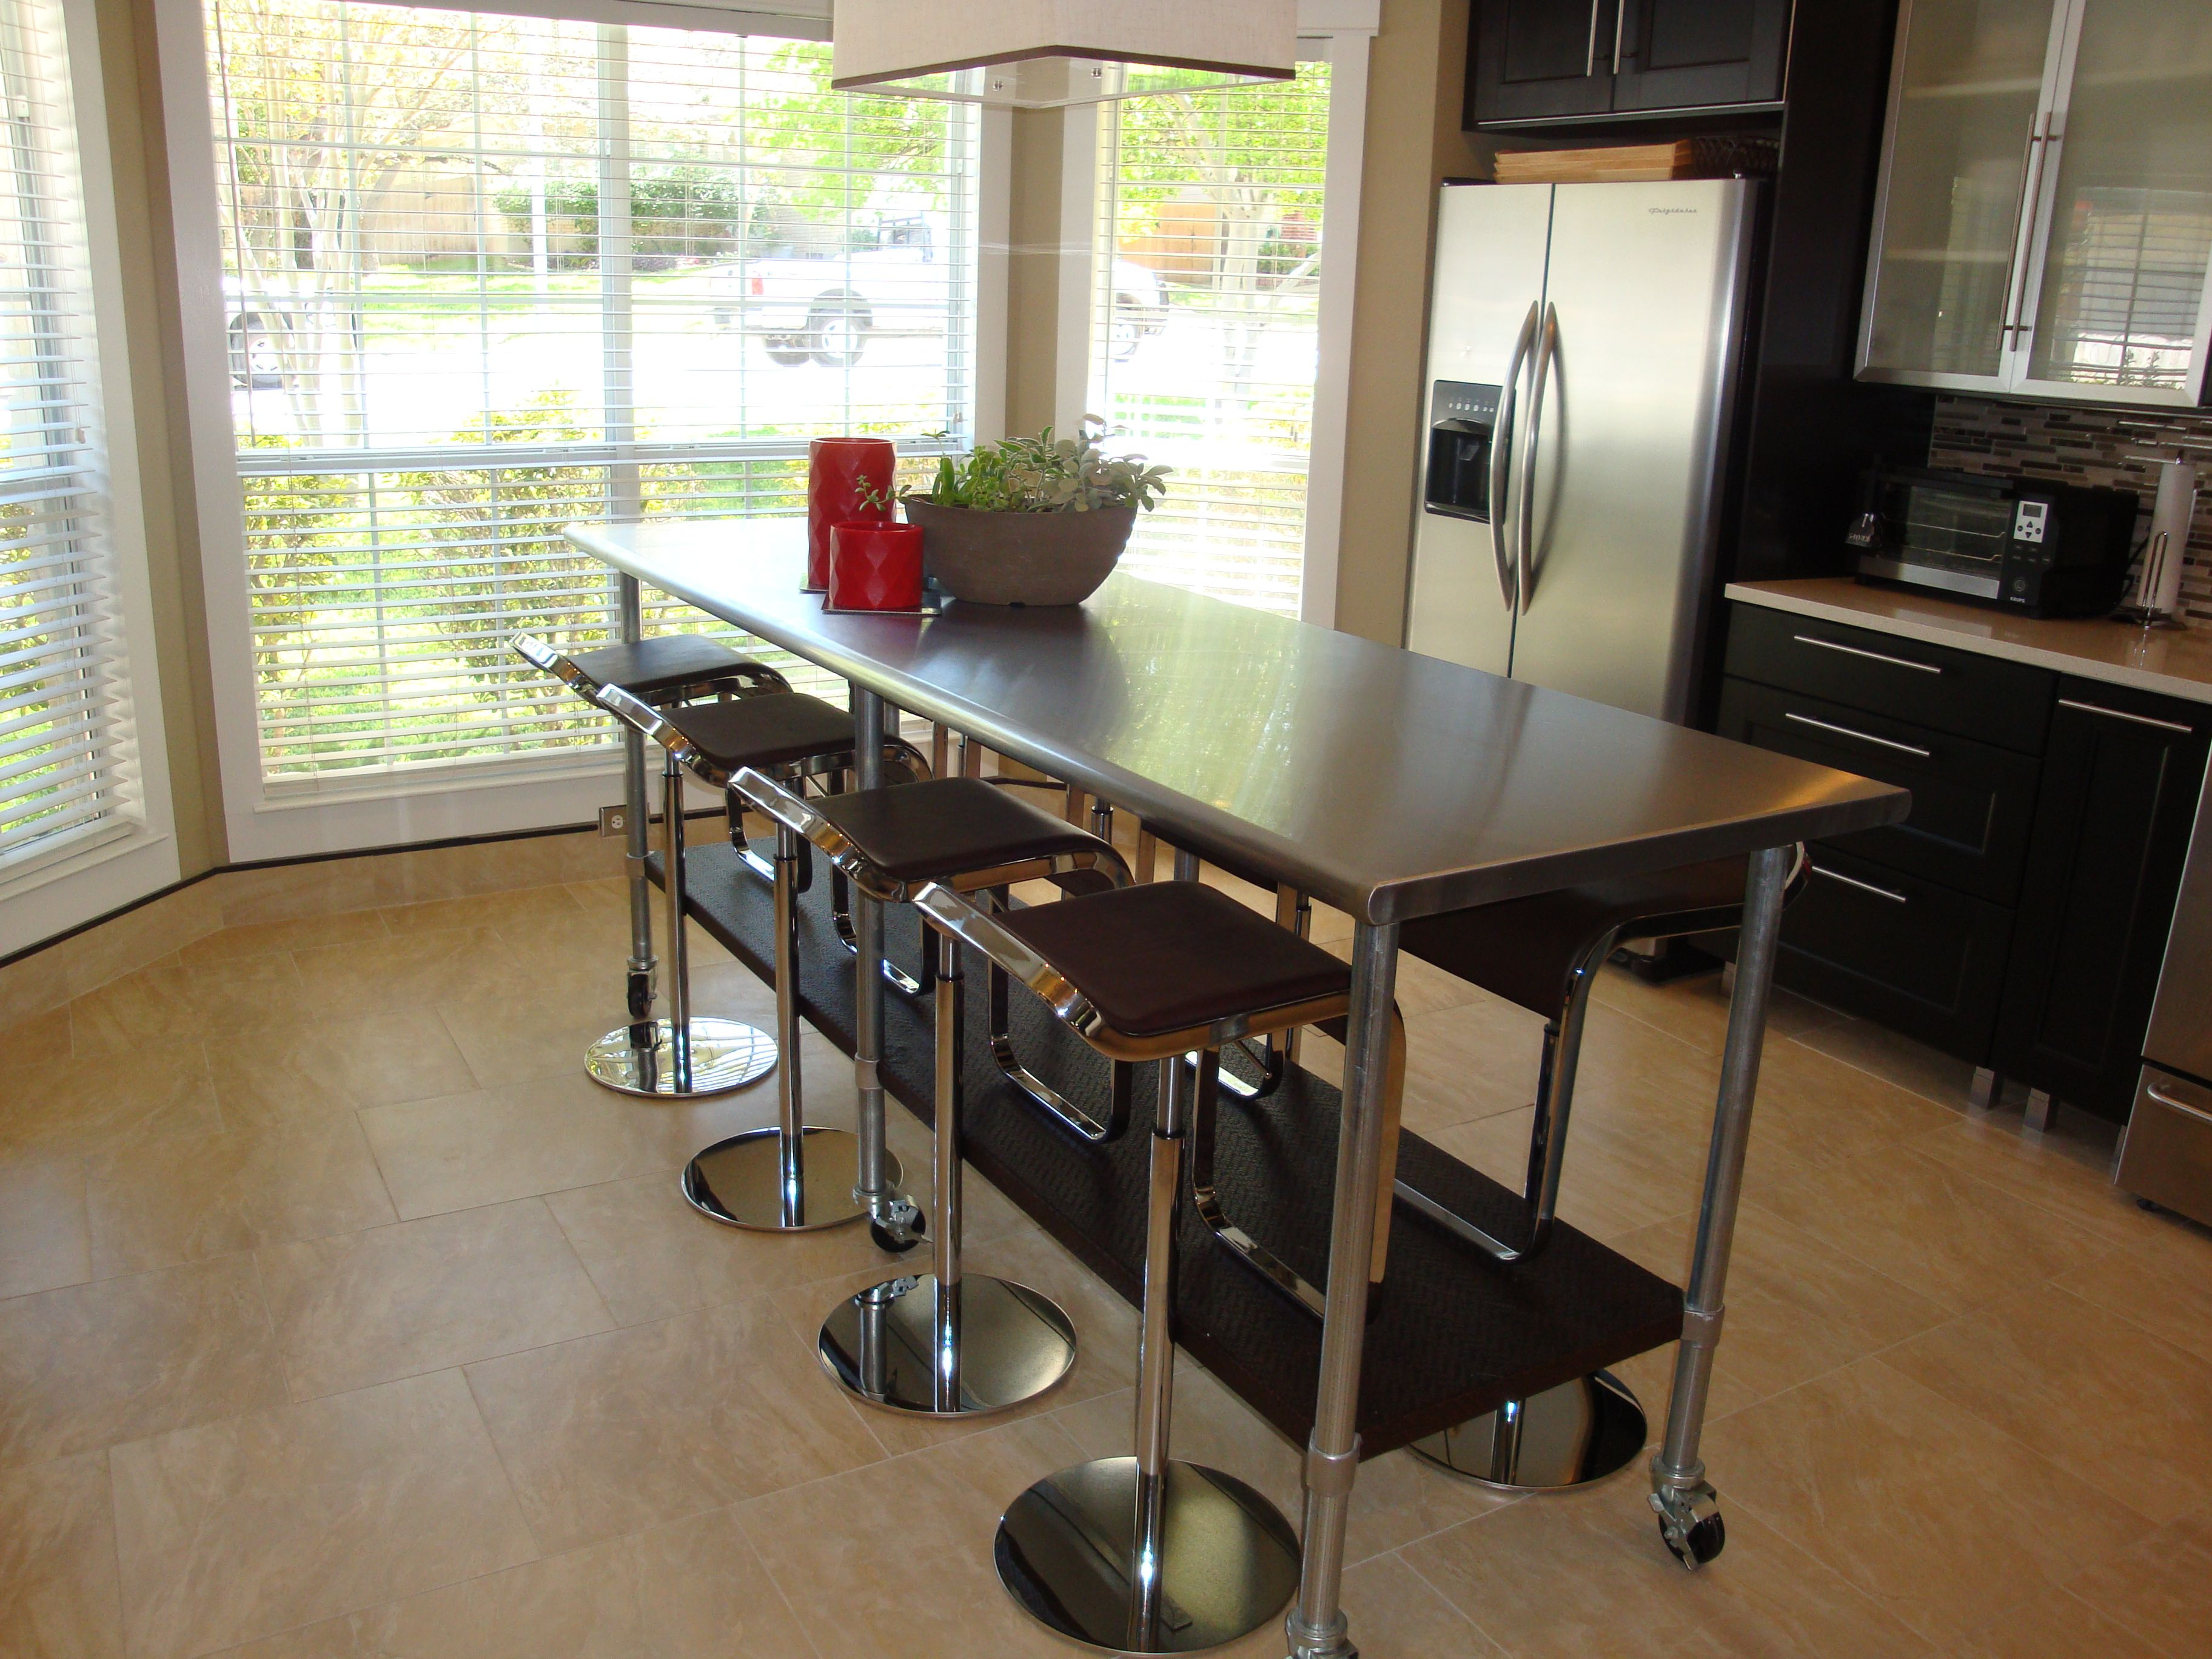 Stainless Steel Kitchen Table Paper Towel Holder Island We 39ve Had This For A Few Years And